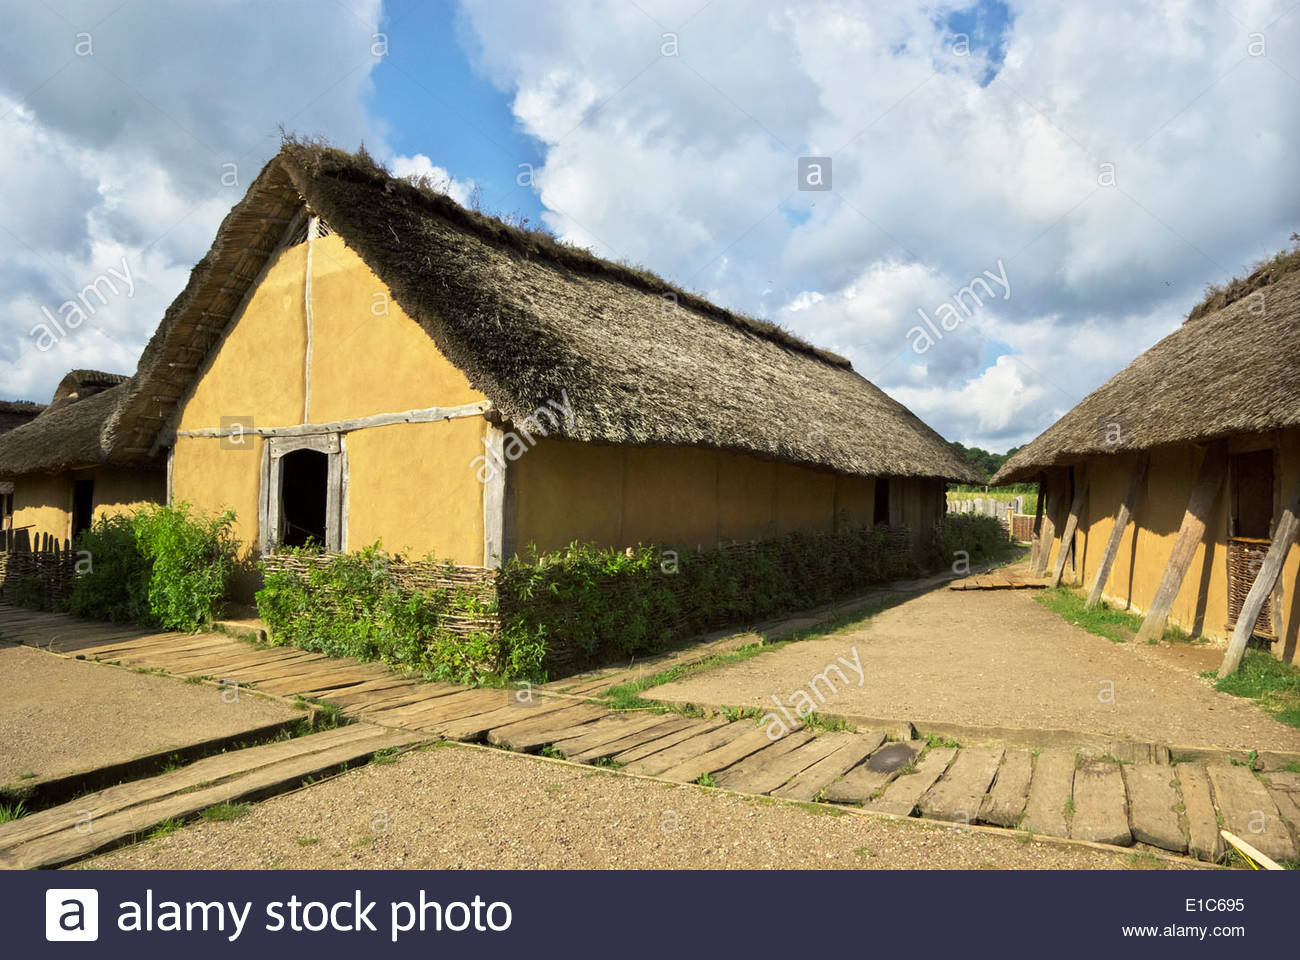 In its heyday, the Viking market town of Haithabu had about 1000 such thatch-roofed houses surrounded by a semicircular Stock Photo